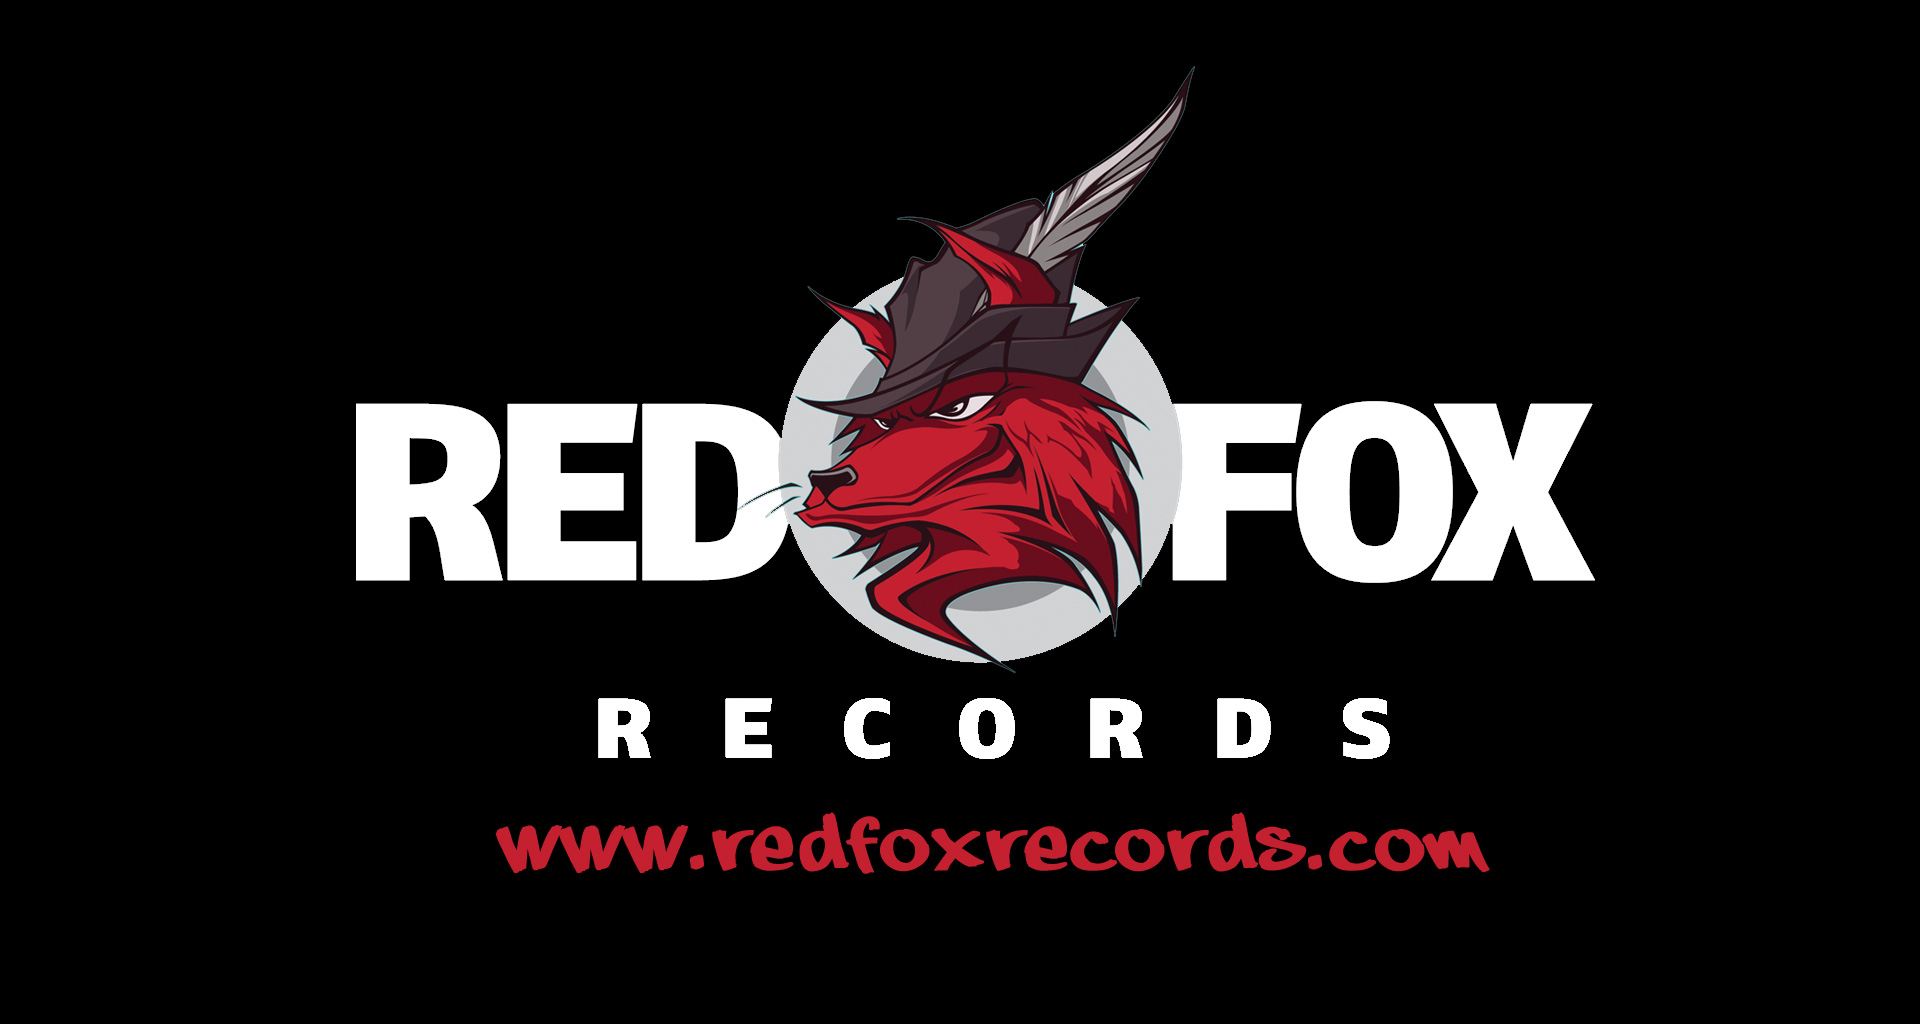 redfox single personals California news publisher files slapp suit against competing online publisher or attach even a single blog post or shuts down personals.